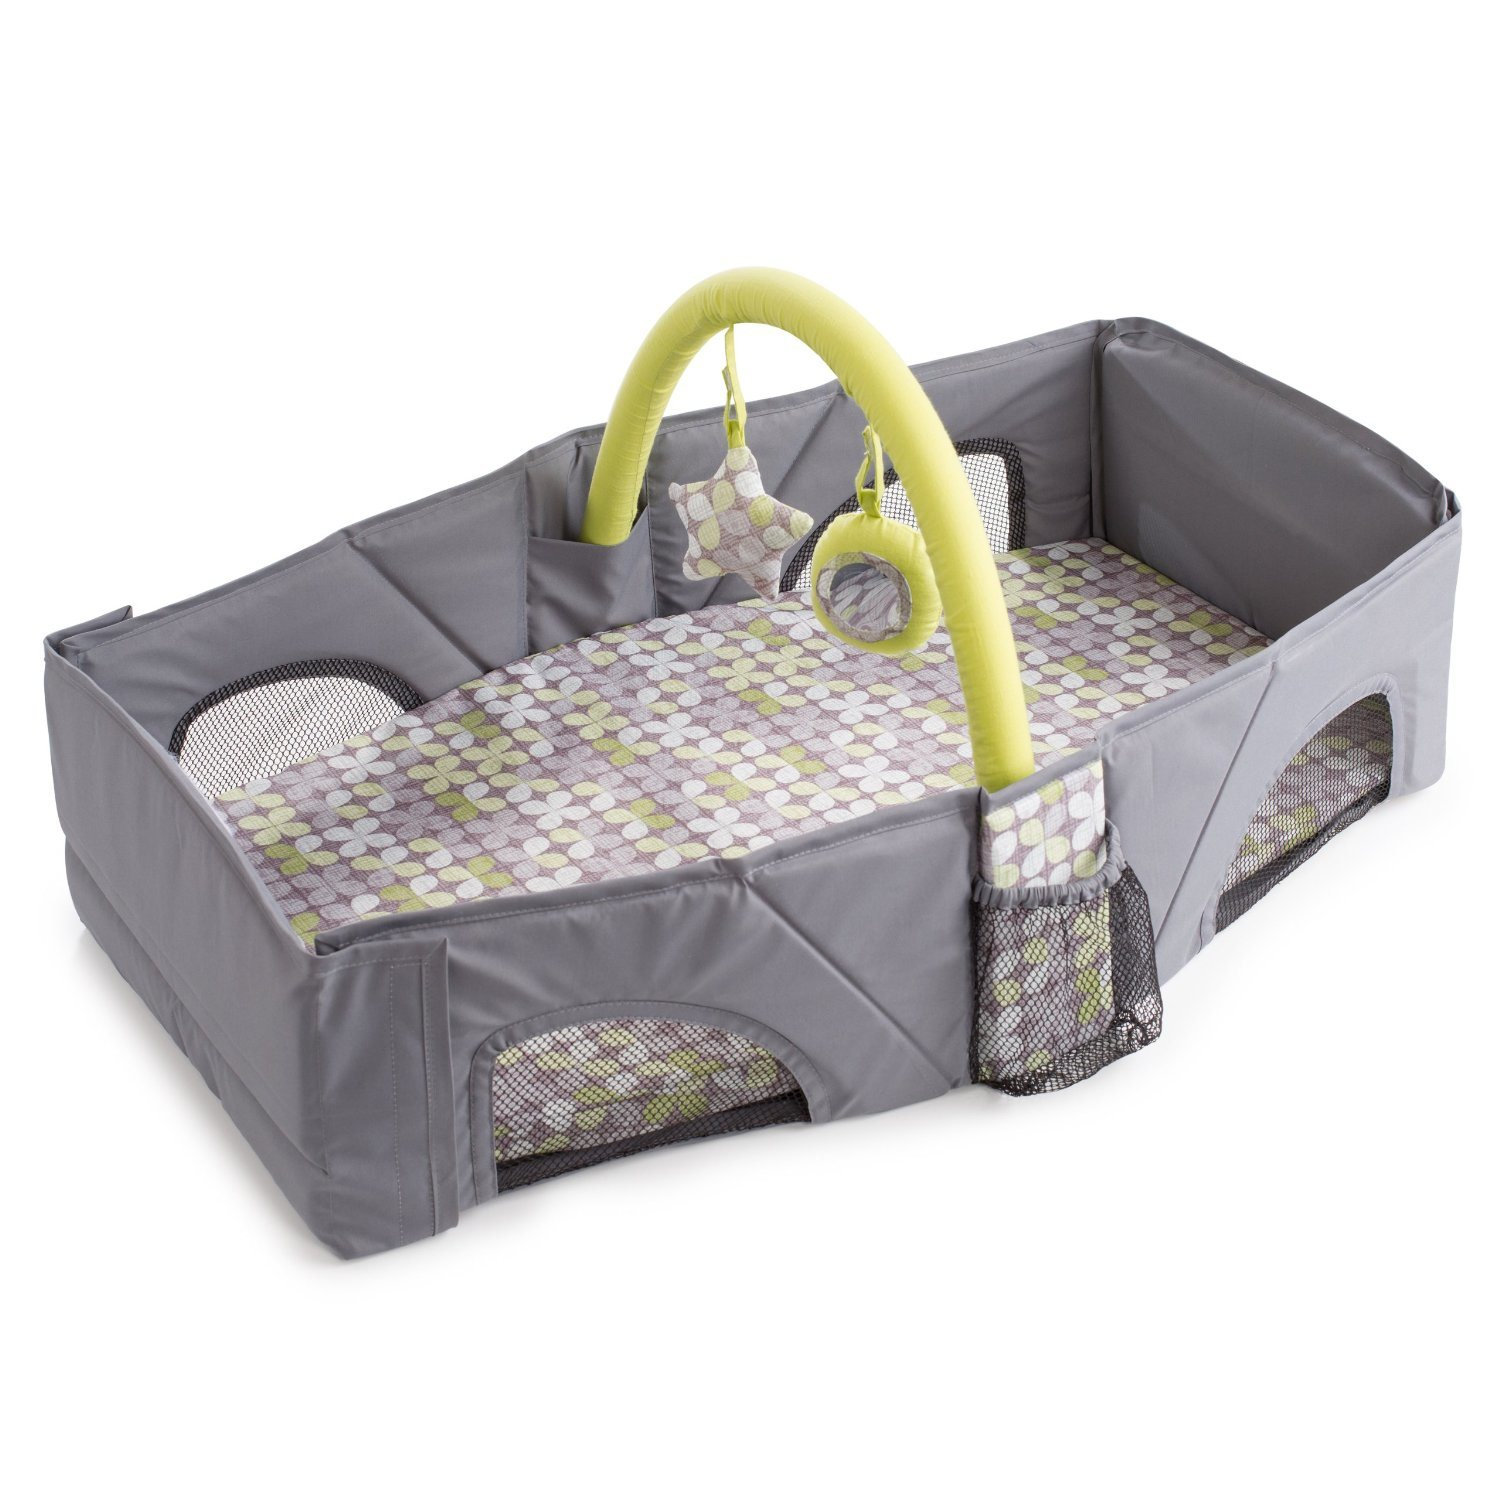 2 In1 Portable Crib Baby Bag, Collapsible Variable Package, Multifunctional Baby Travel Bag&Bed Folding Bed Anti-Mosquito Insulation Game Handle Shoulder